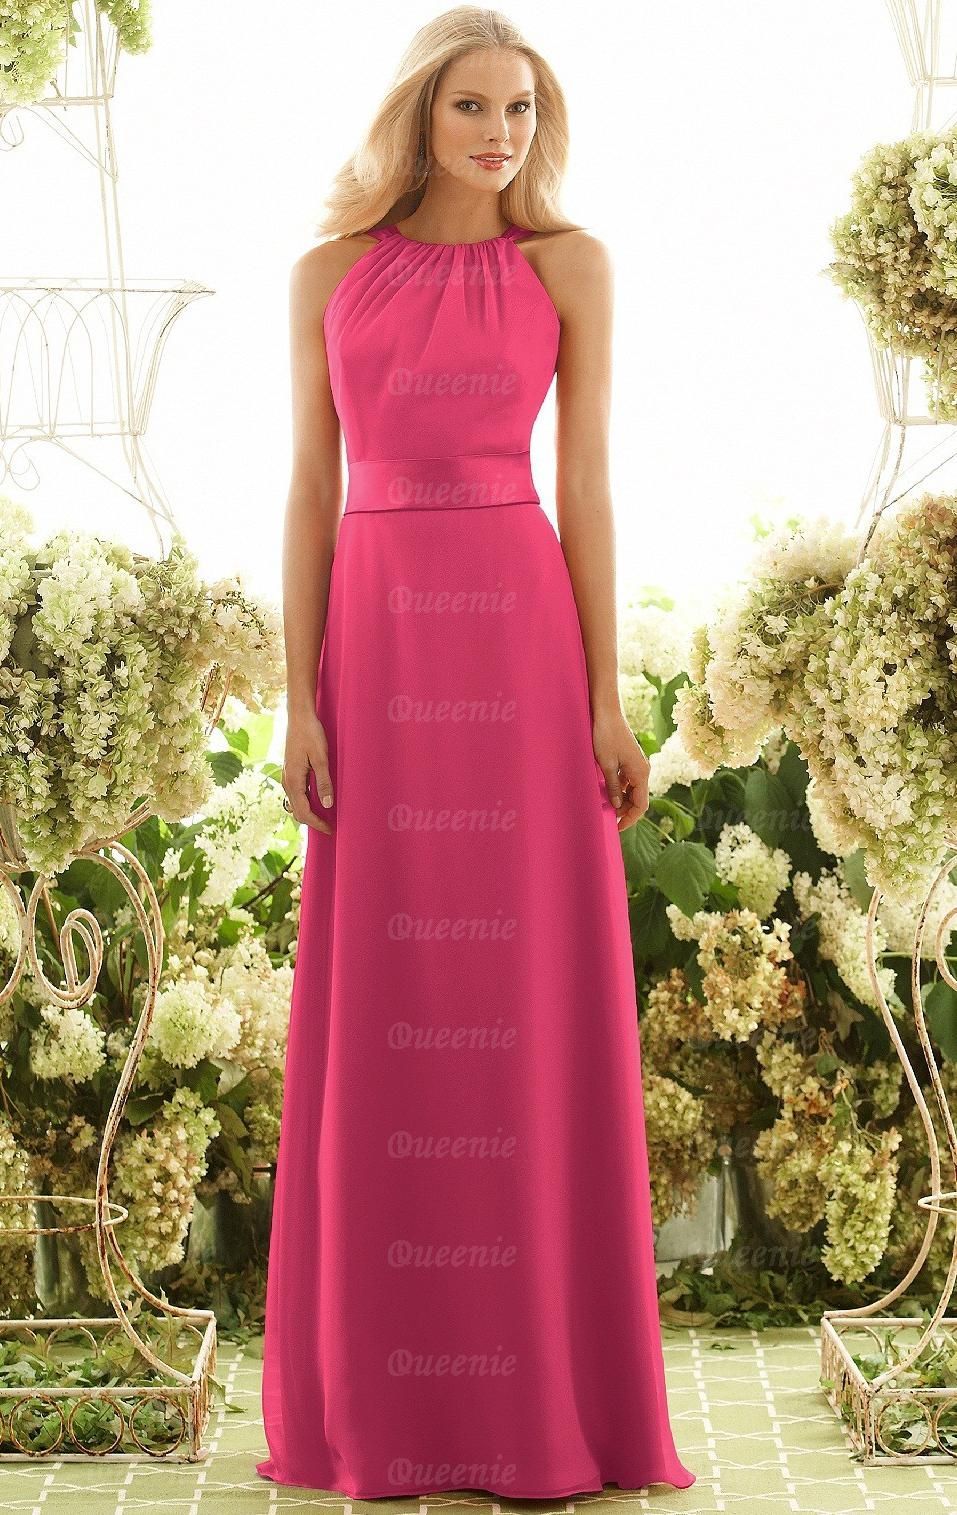 Cheap Fuchsia Bridesmaid Dress BNNAH0027-Bridesmaid UK | All Things ...